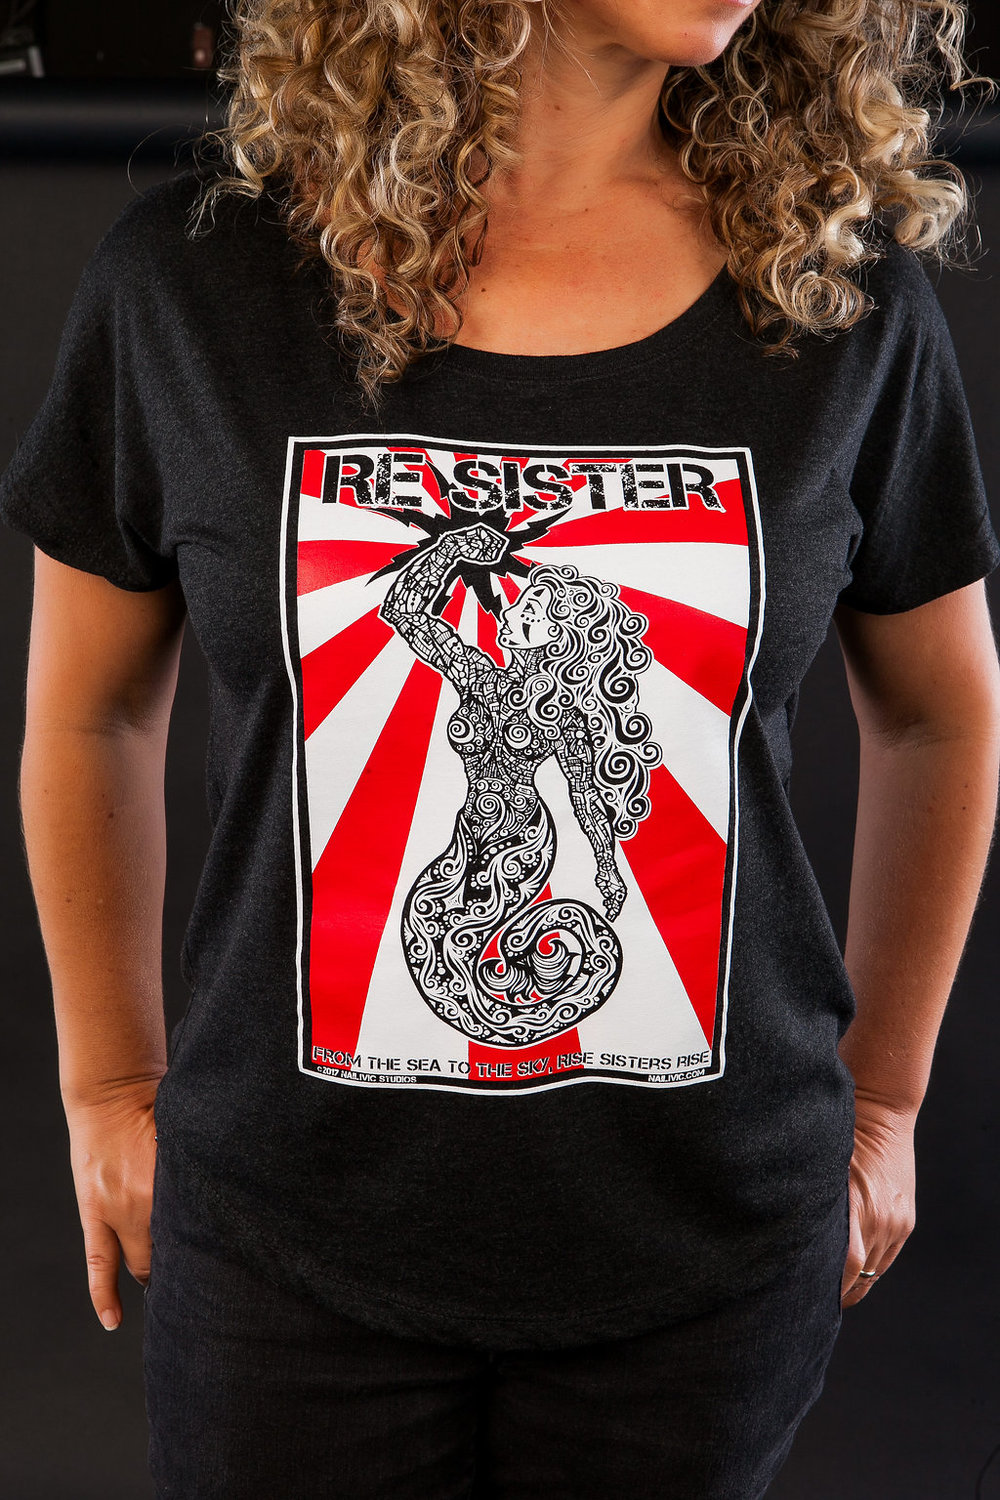 RESISTOR (MEN'S, WOMEN'S & YOUTH SIZES)